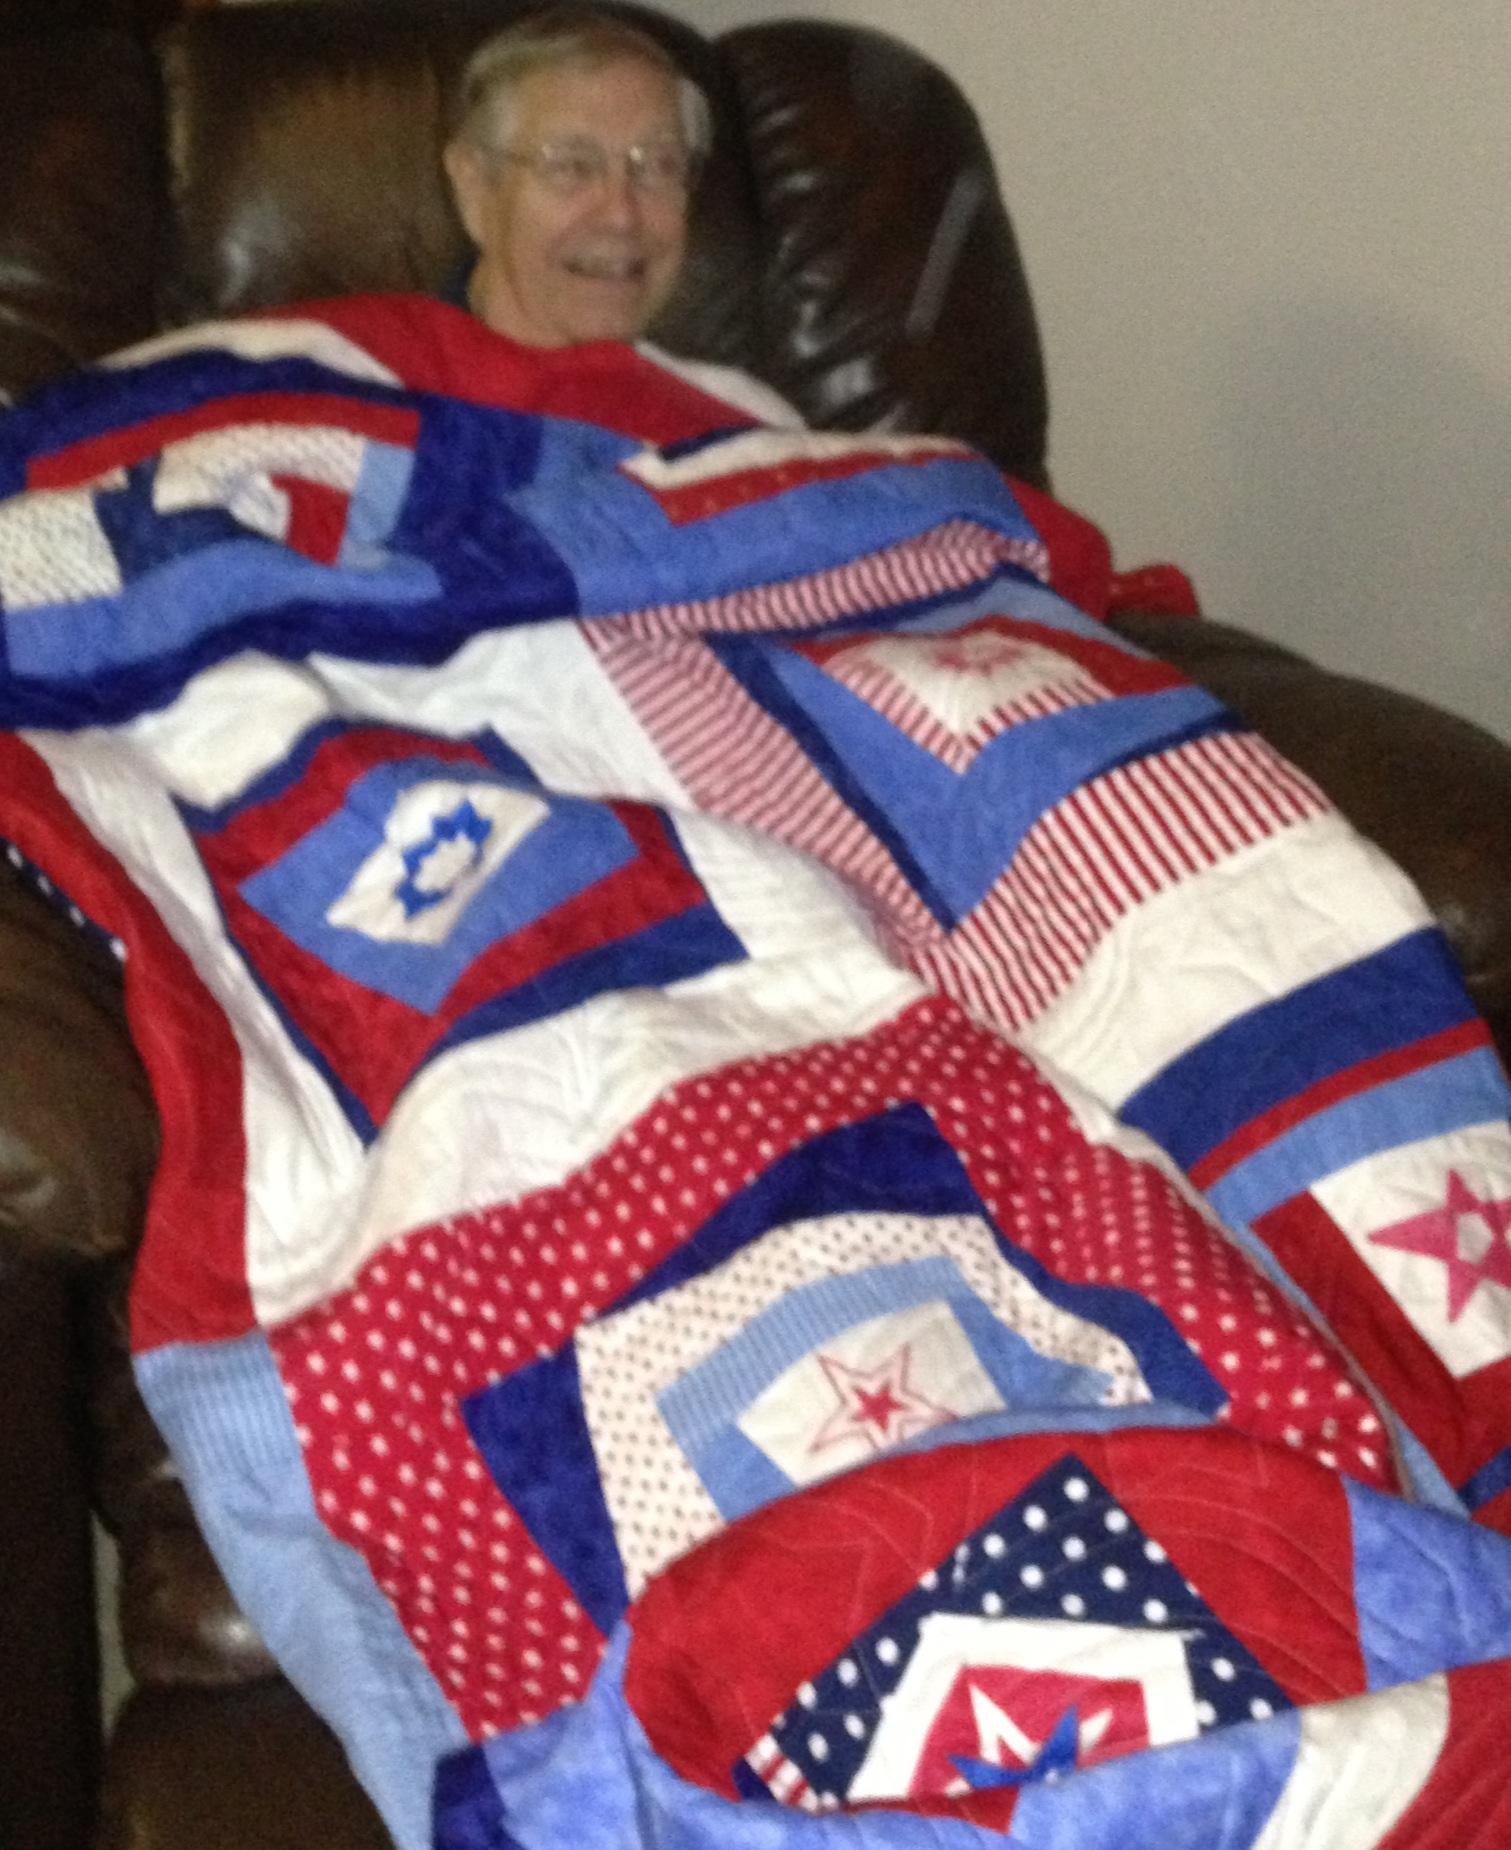 Wrapped up with the quilt made for him